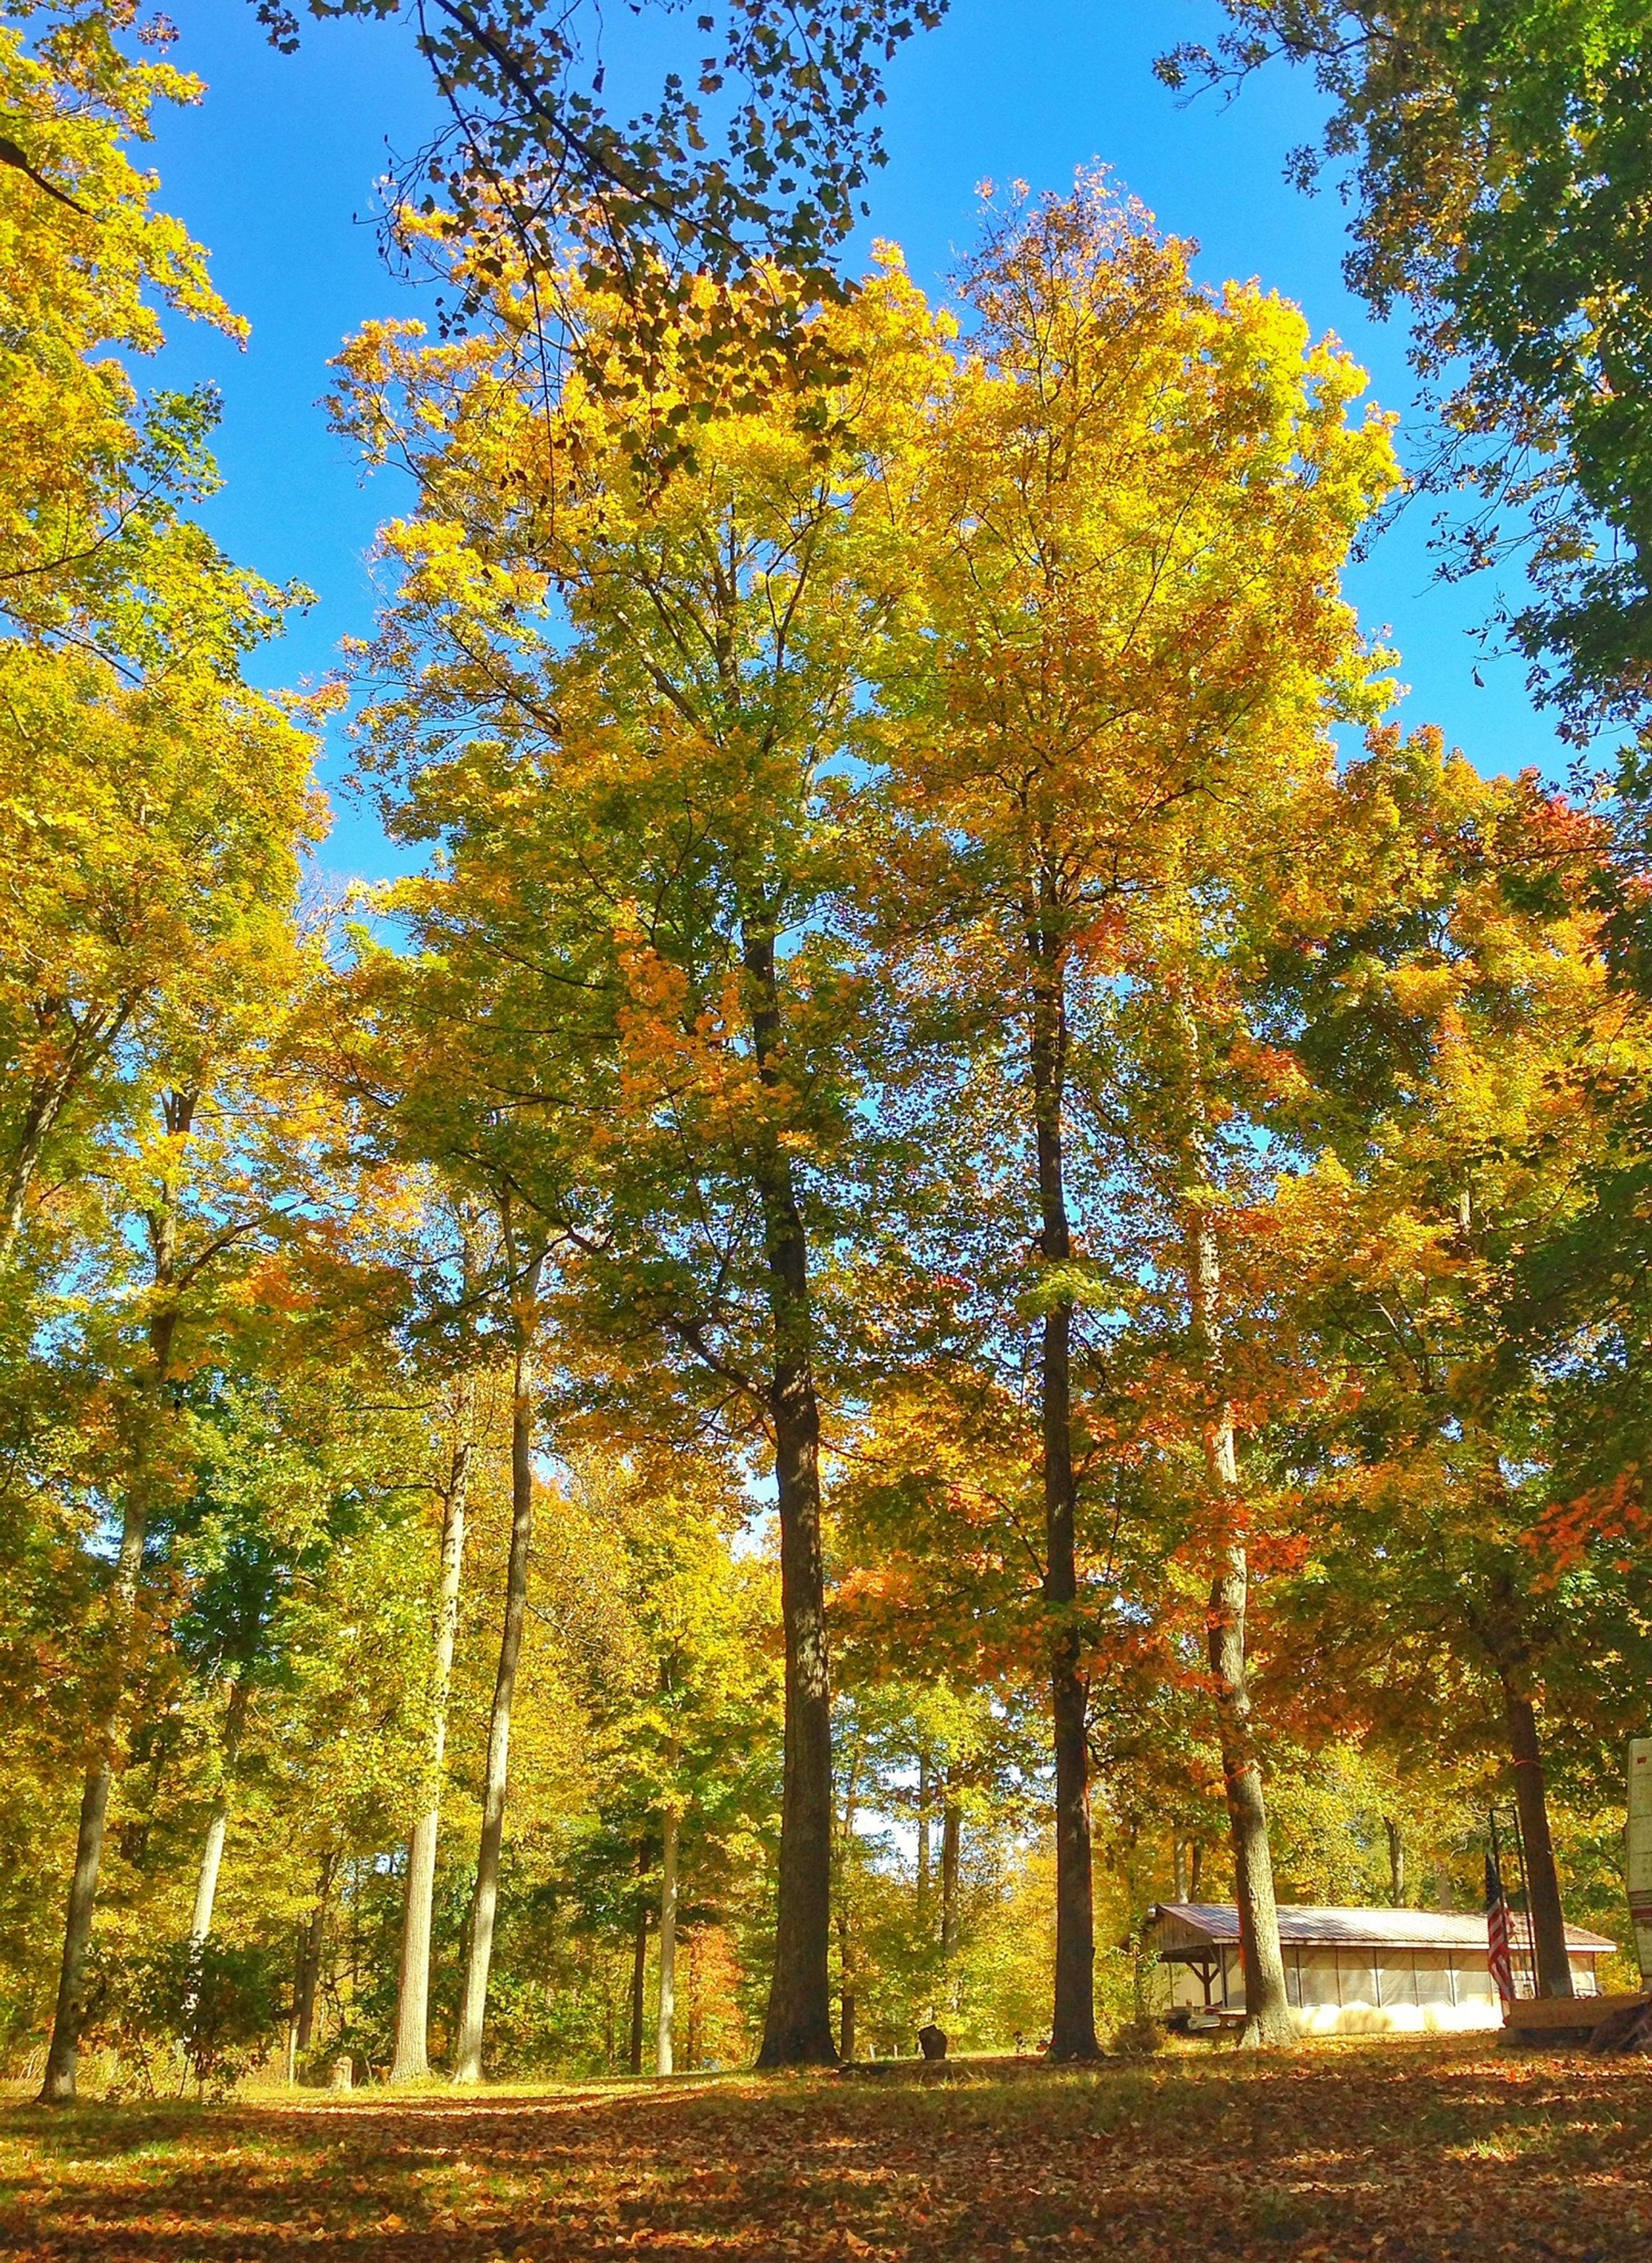 tree, autumn, change, growth, tranquility, season, beauty in nature, nature, tranquil scene, clear sky, yellow, scenics, branch, sunlight, landscape, day, green color, park - man made space, sky, lush foliage